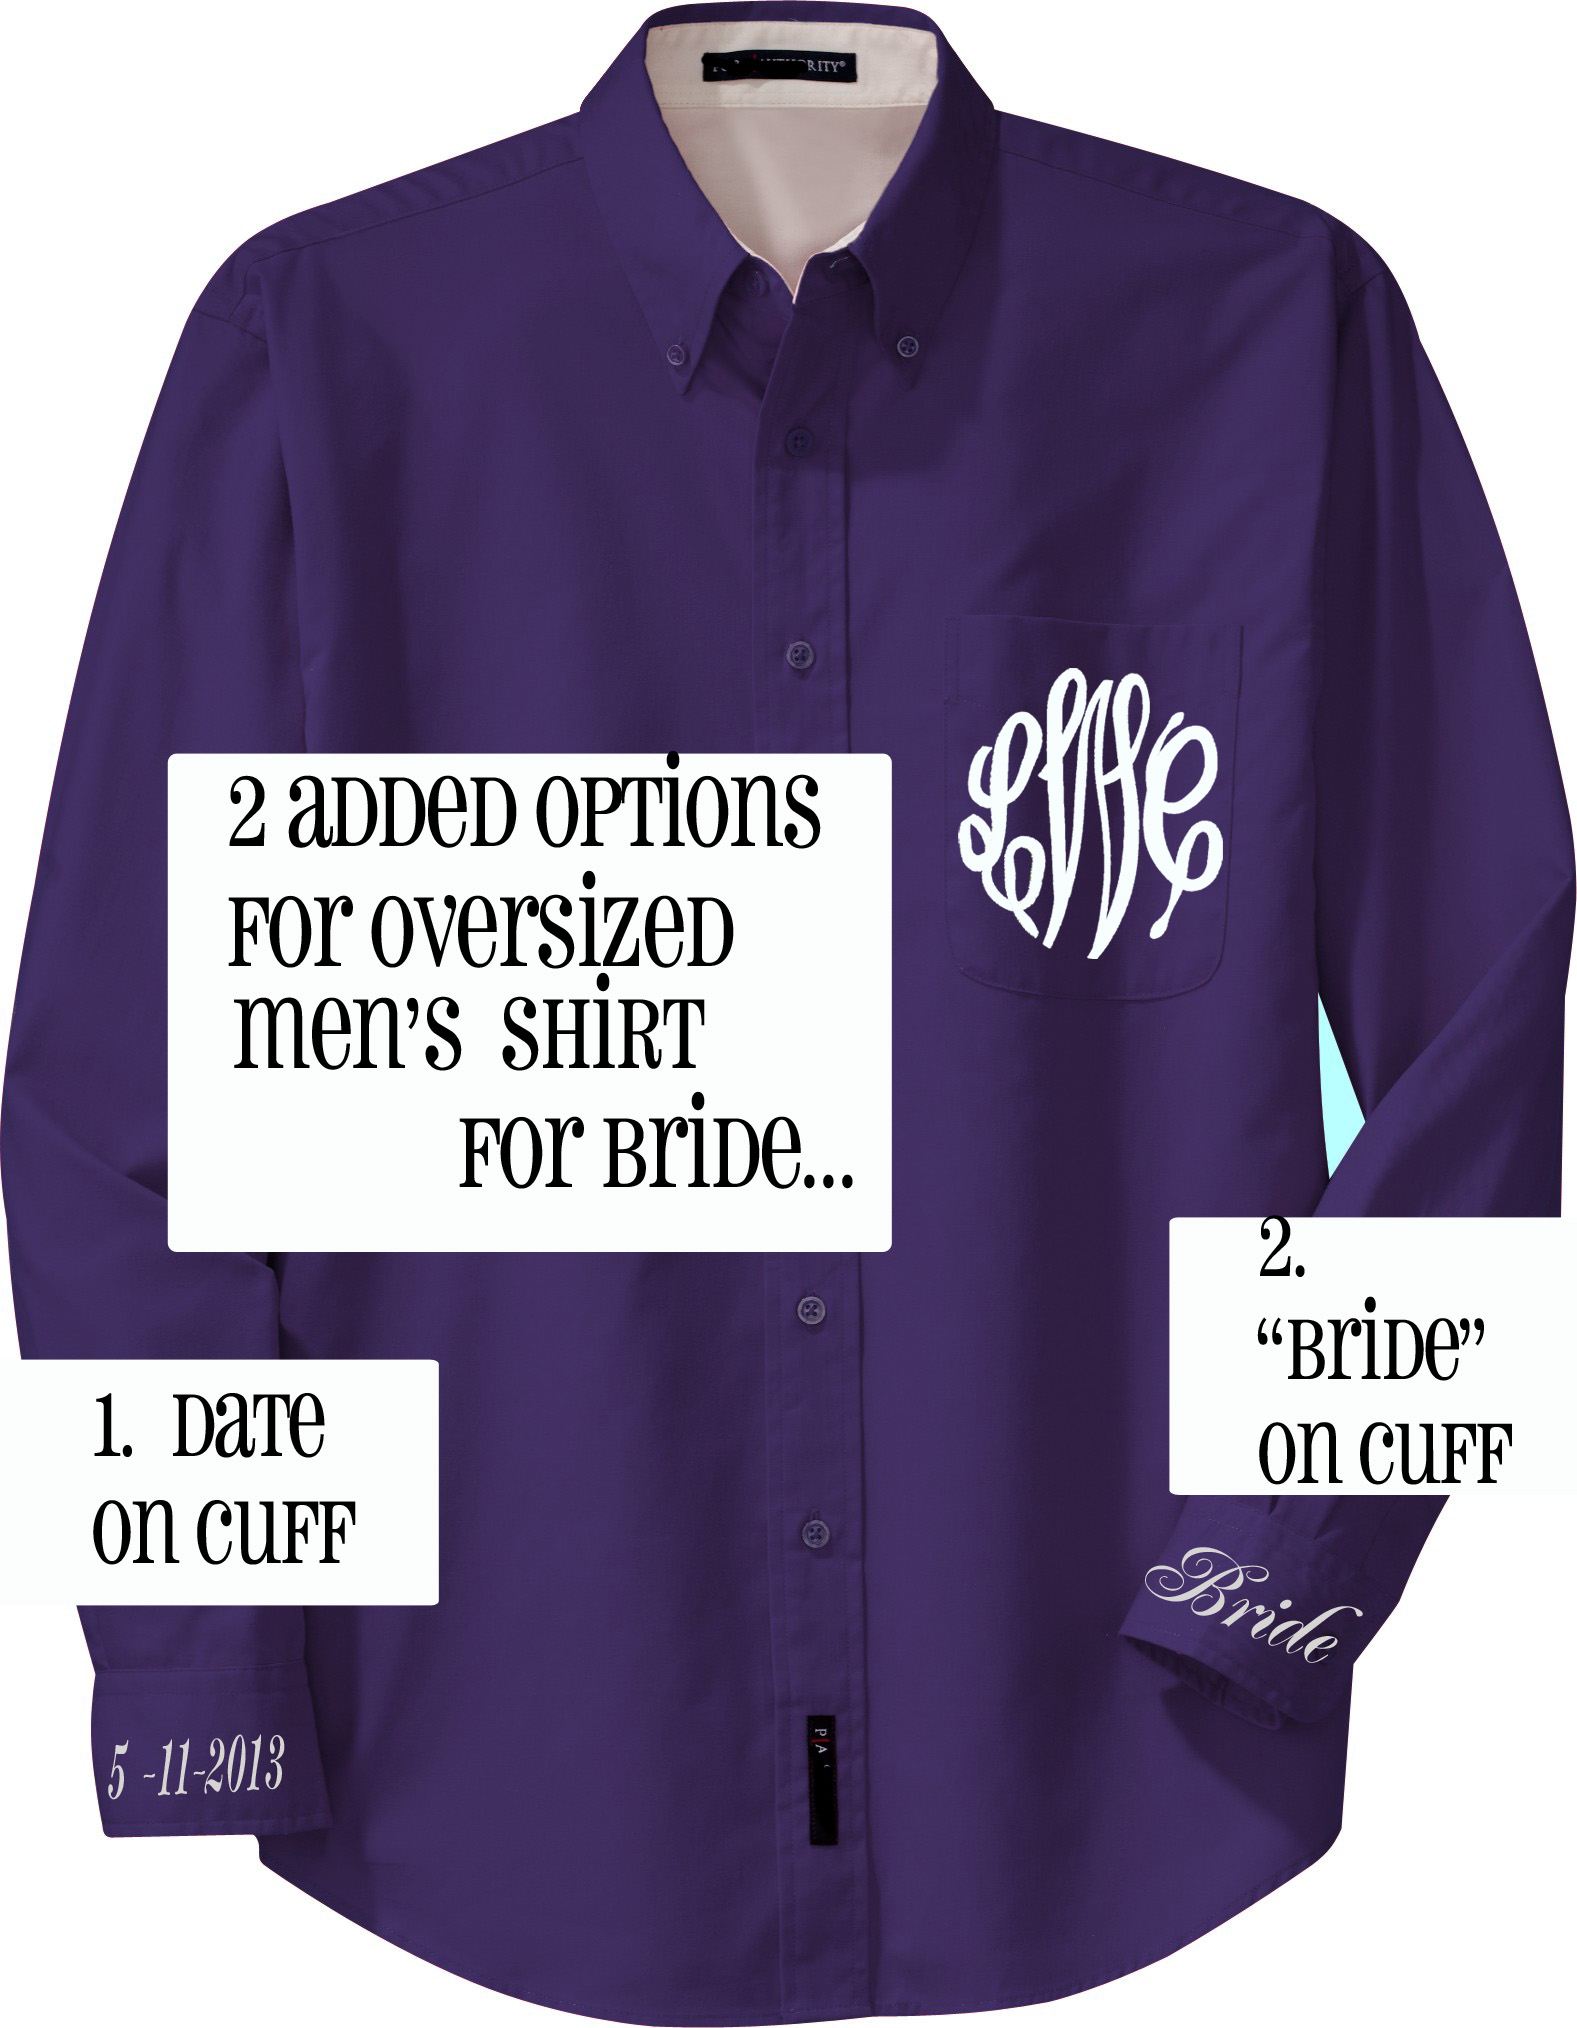 Personalized Button Down Shirts For Bridesmaids Bcd Tofu House